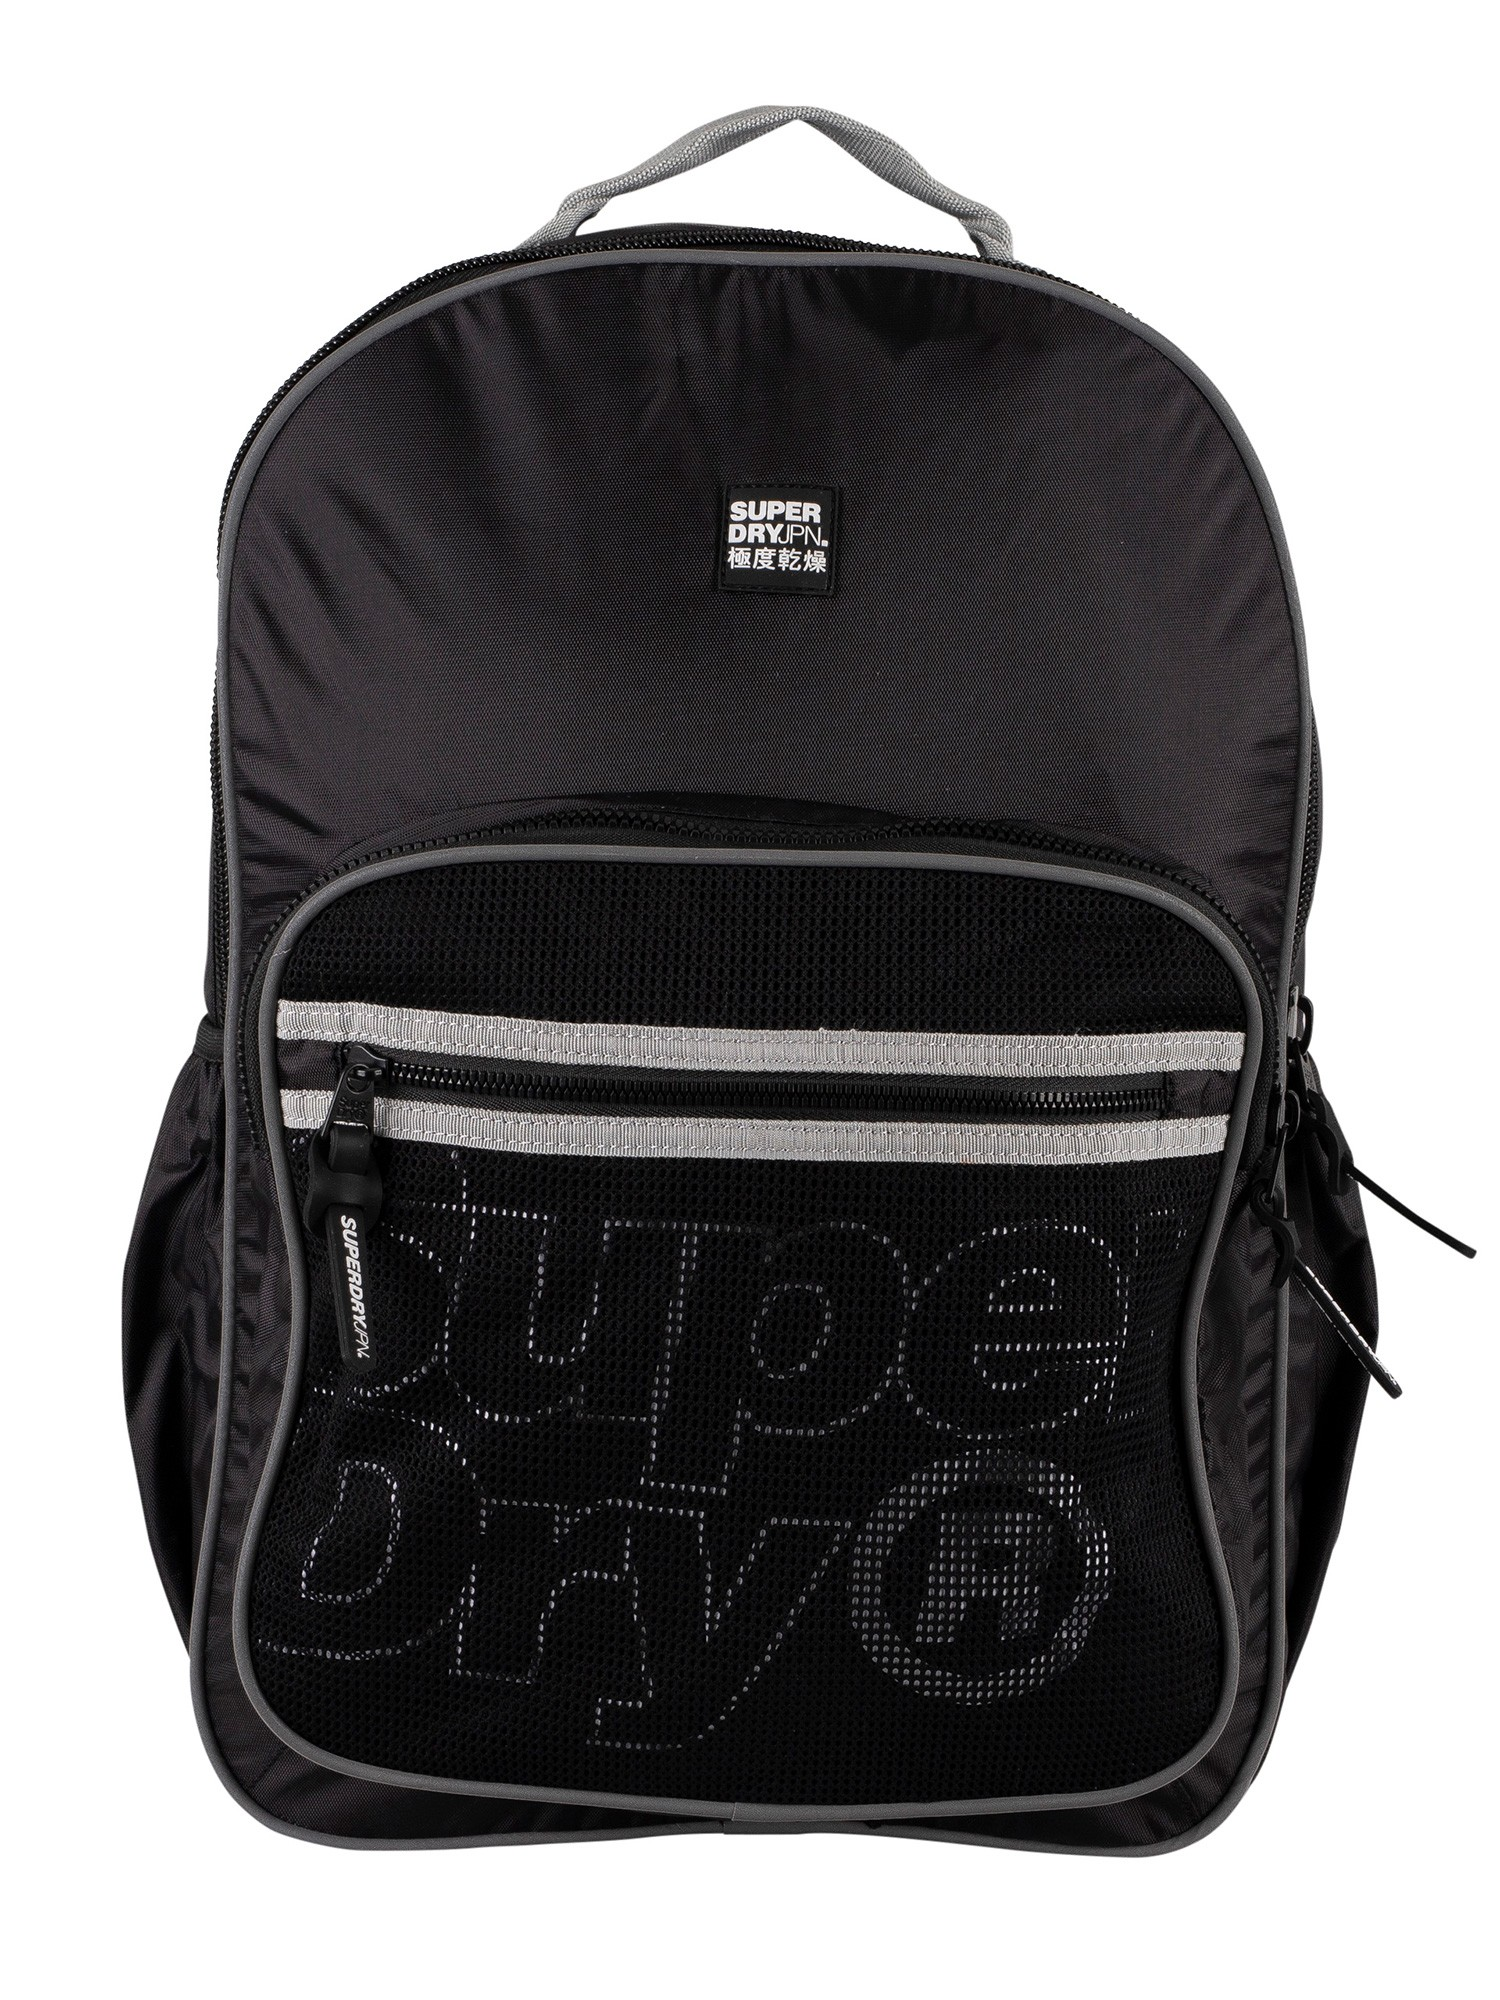 Superdry Scholar Backpack - Black